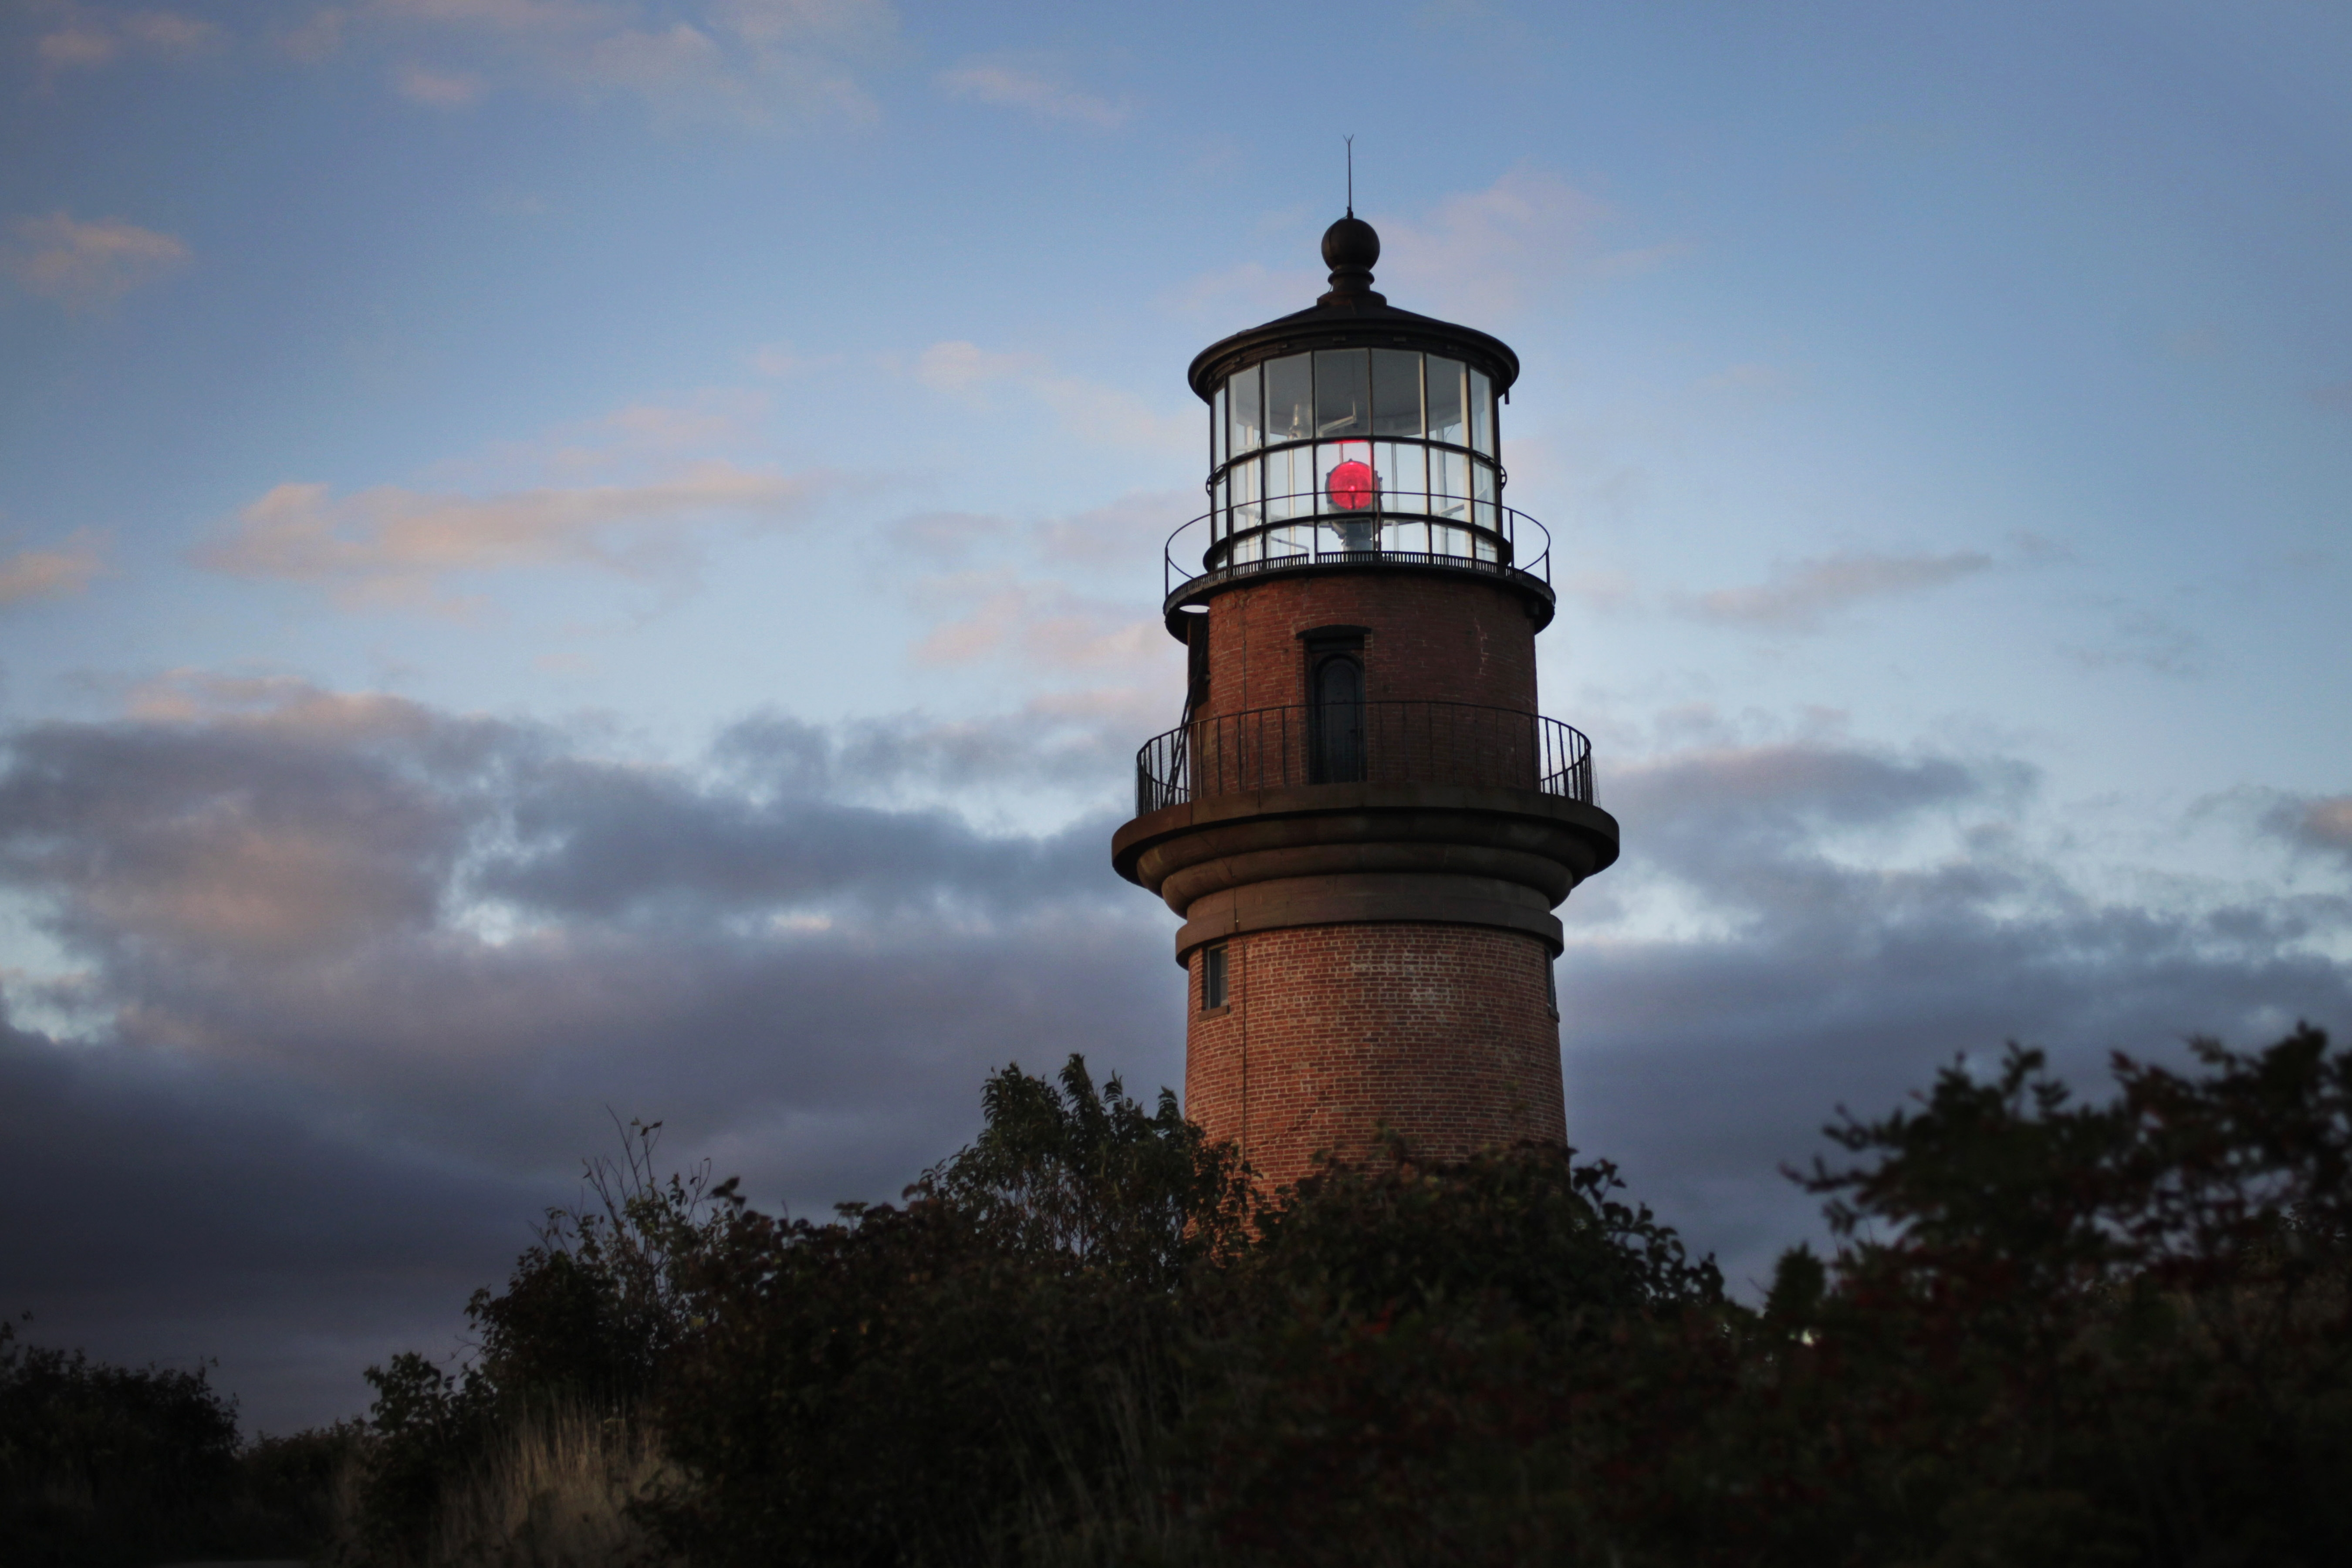 Gay Head Light flashes a red signal in Aquinnah, MA, Oct. 13, 2013 on the island of Martha's Vineyard. The lighthouse flashes alternating red and white beams of light. (AP Photo/Mark Lennihan)